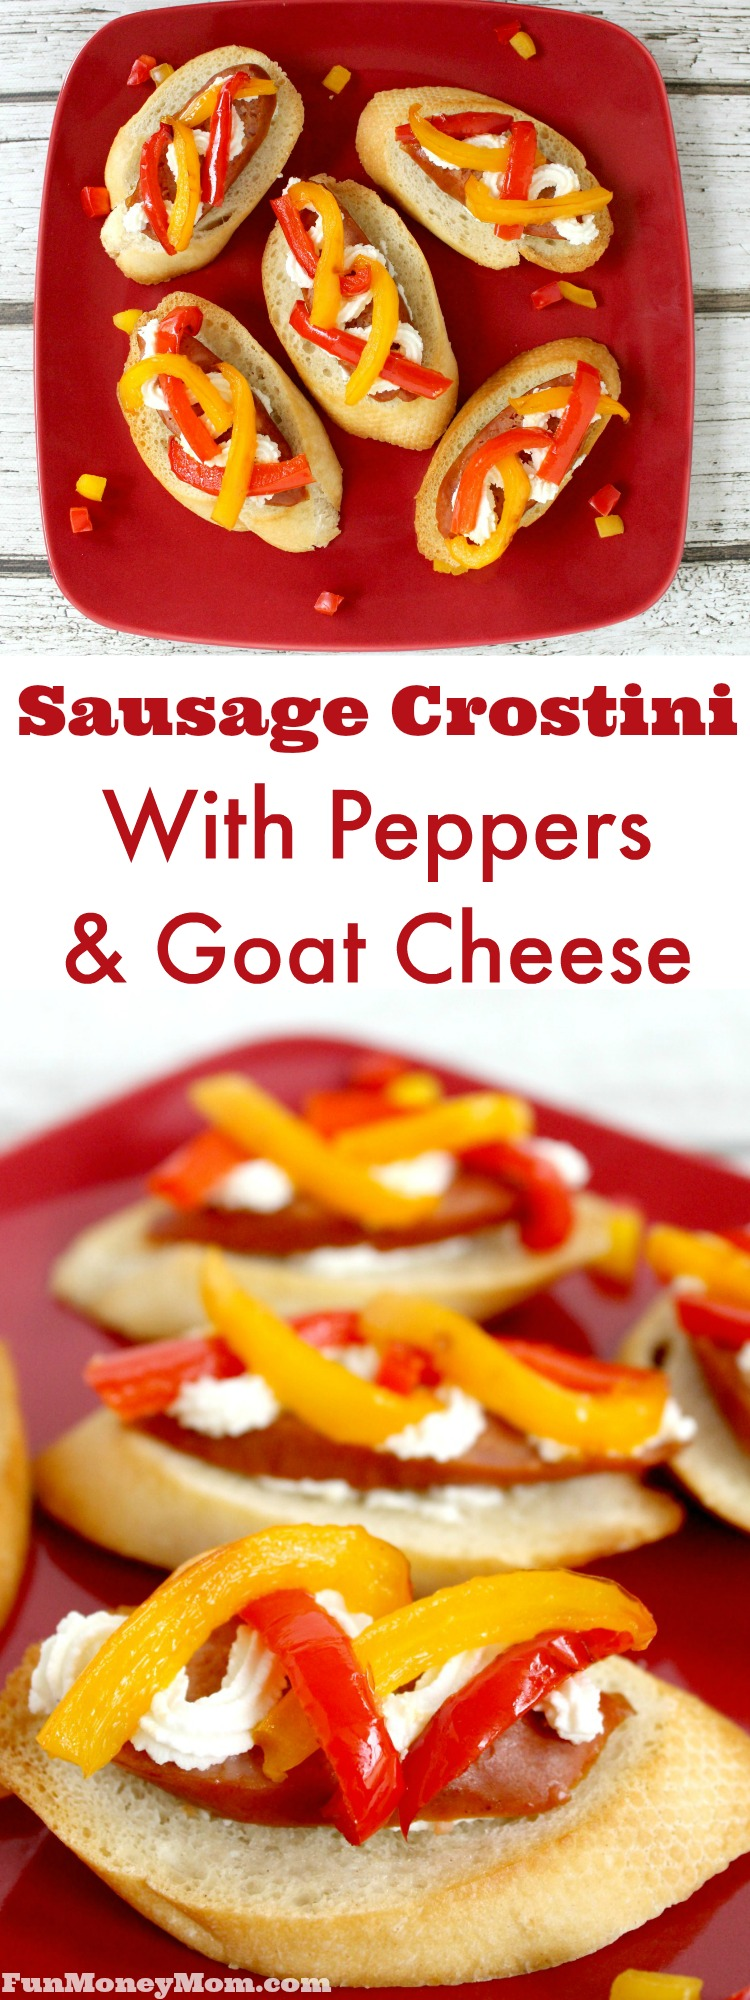 Having a party? This sausage crostini with peppers and goat cheese makes the perfect party food or appetizer for your next get together!